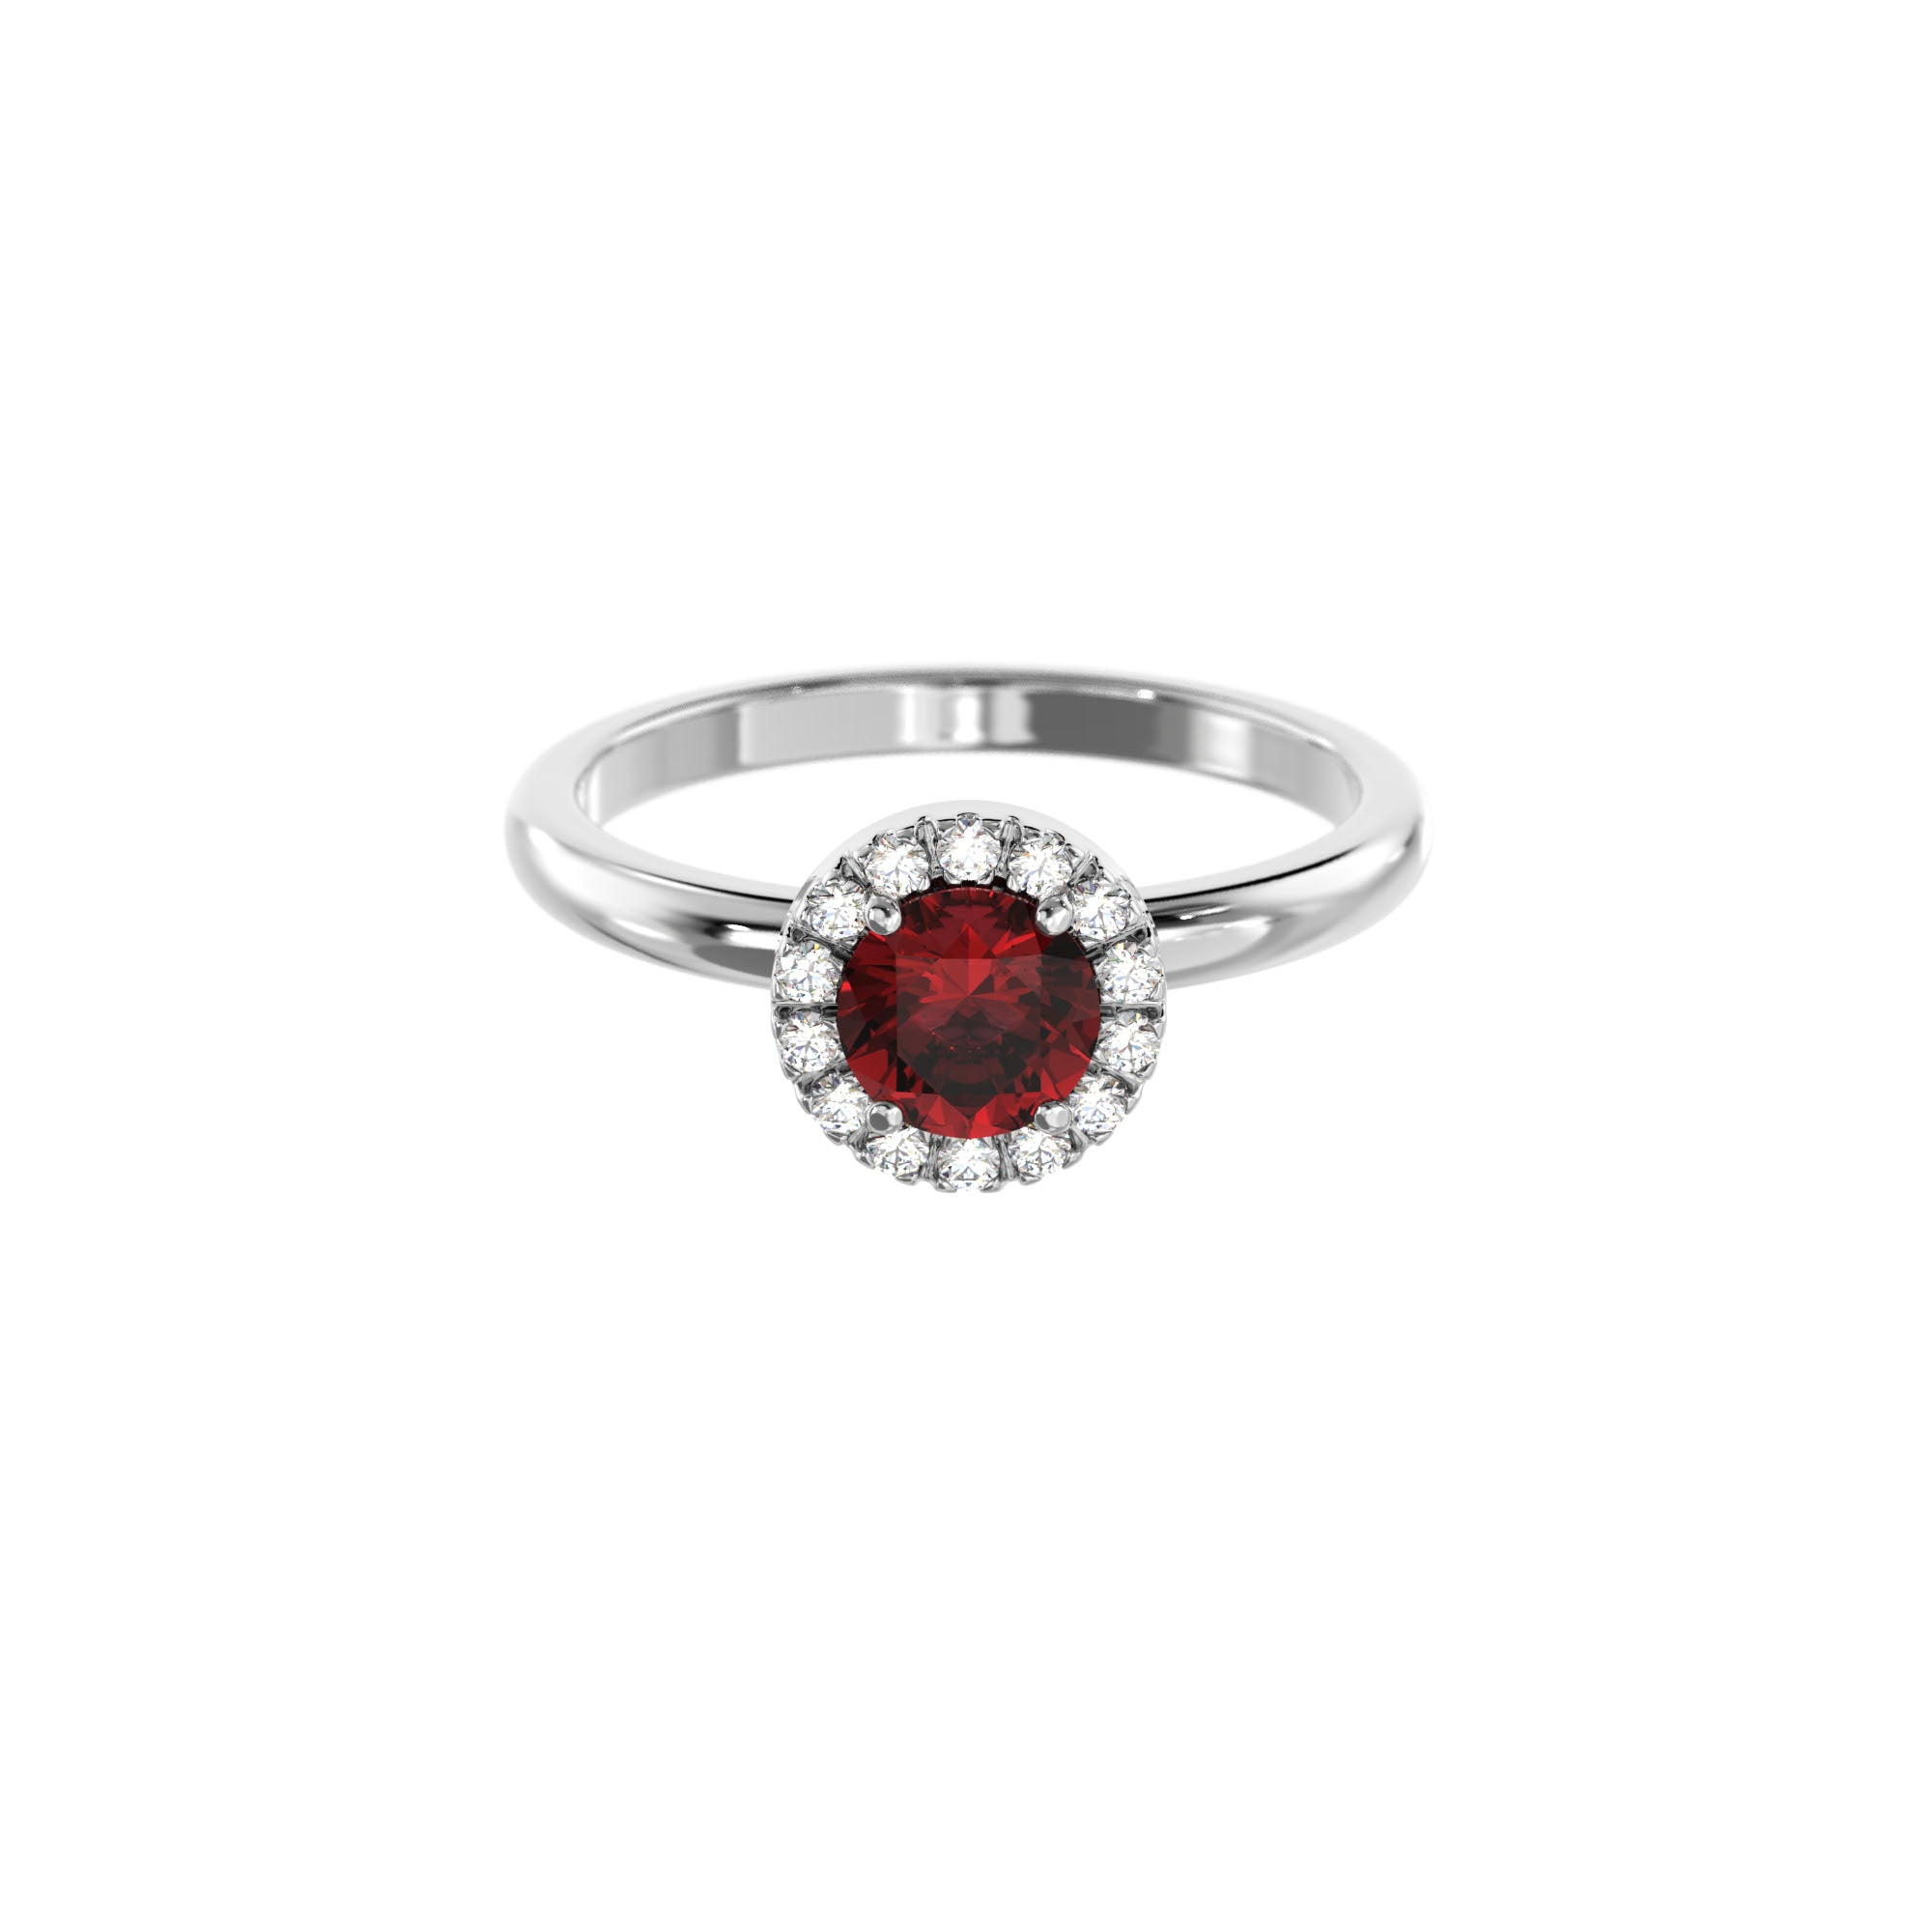 925 Silver Luxe Series Ring - Lydia (Garnet)